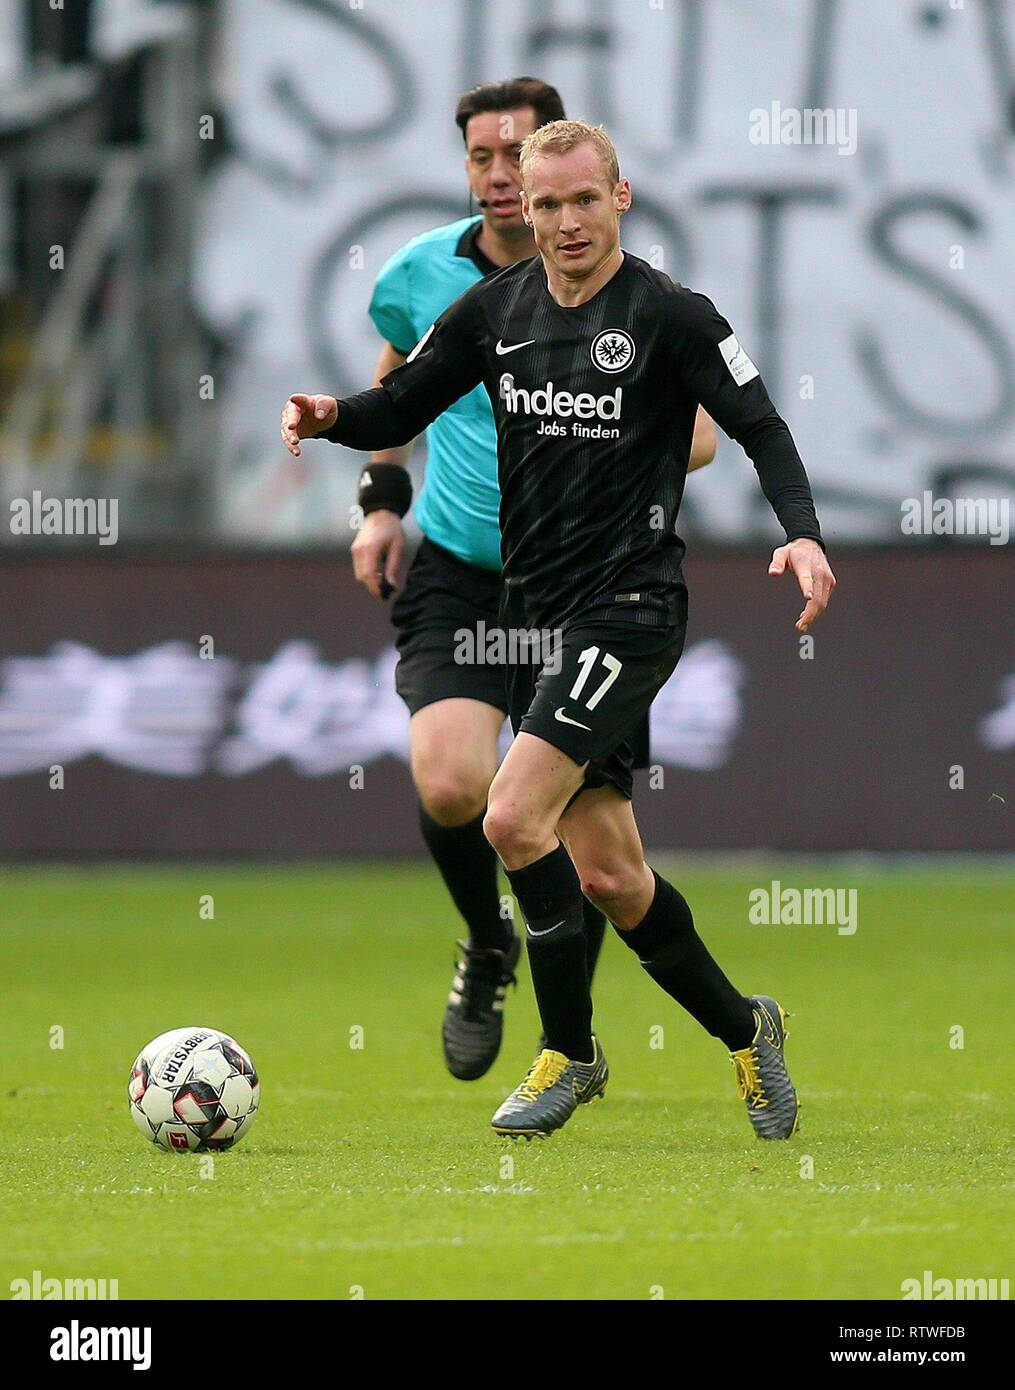 Frankfurt, Deutschland. 02nd Mar, 2019. firo: 02.03.2019, football, 1.Bundesliga, season 2018/2019, Eintracht Frankfurt - TSG 1899 Hoffenheim, single action, Sebastian RODE, whole figure, | usage worldwide Credit: dpa/Alamy Live News Stock Photo